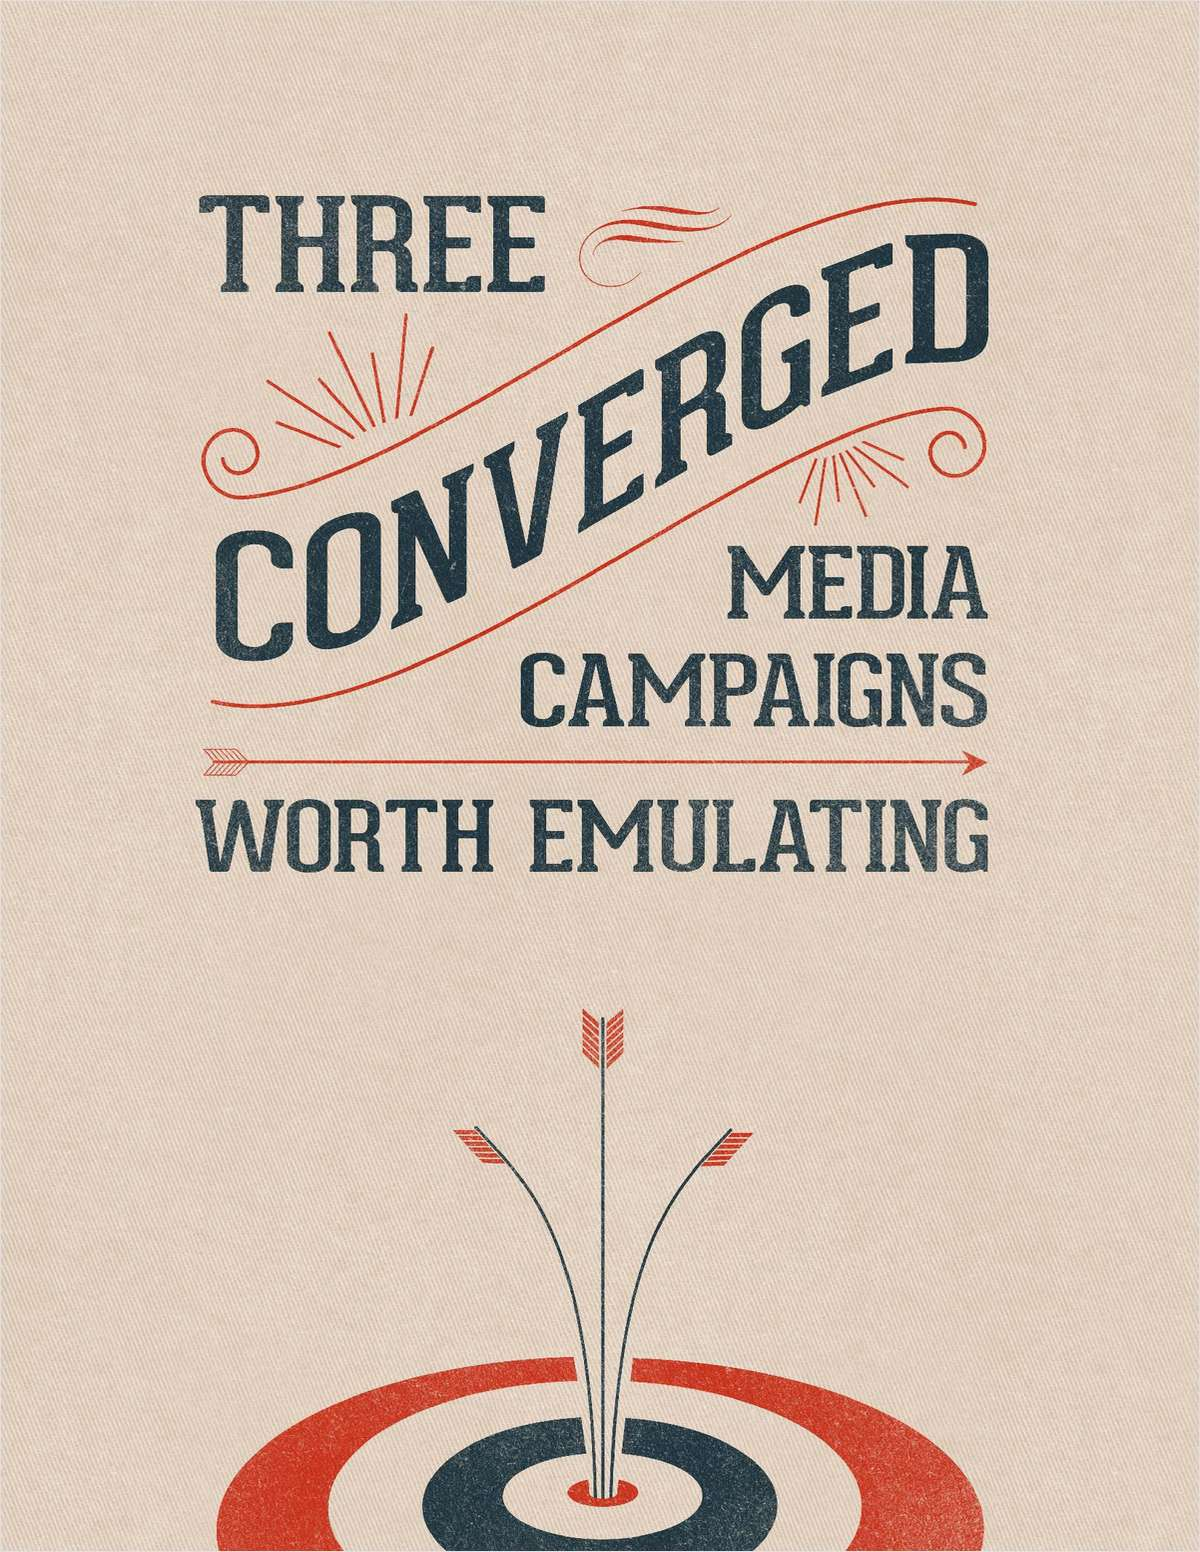 Three Converged Media Campaigns Worth Emulating